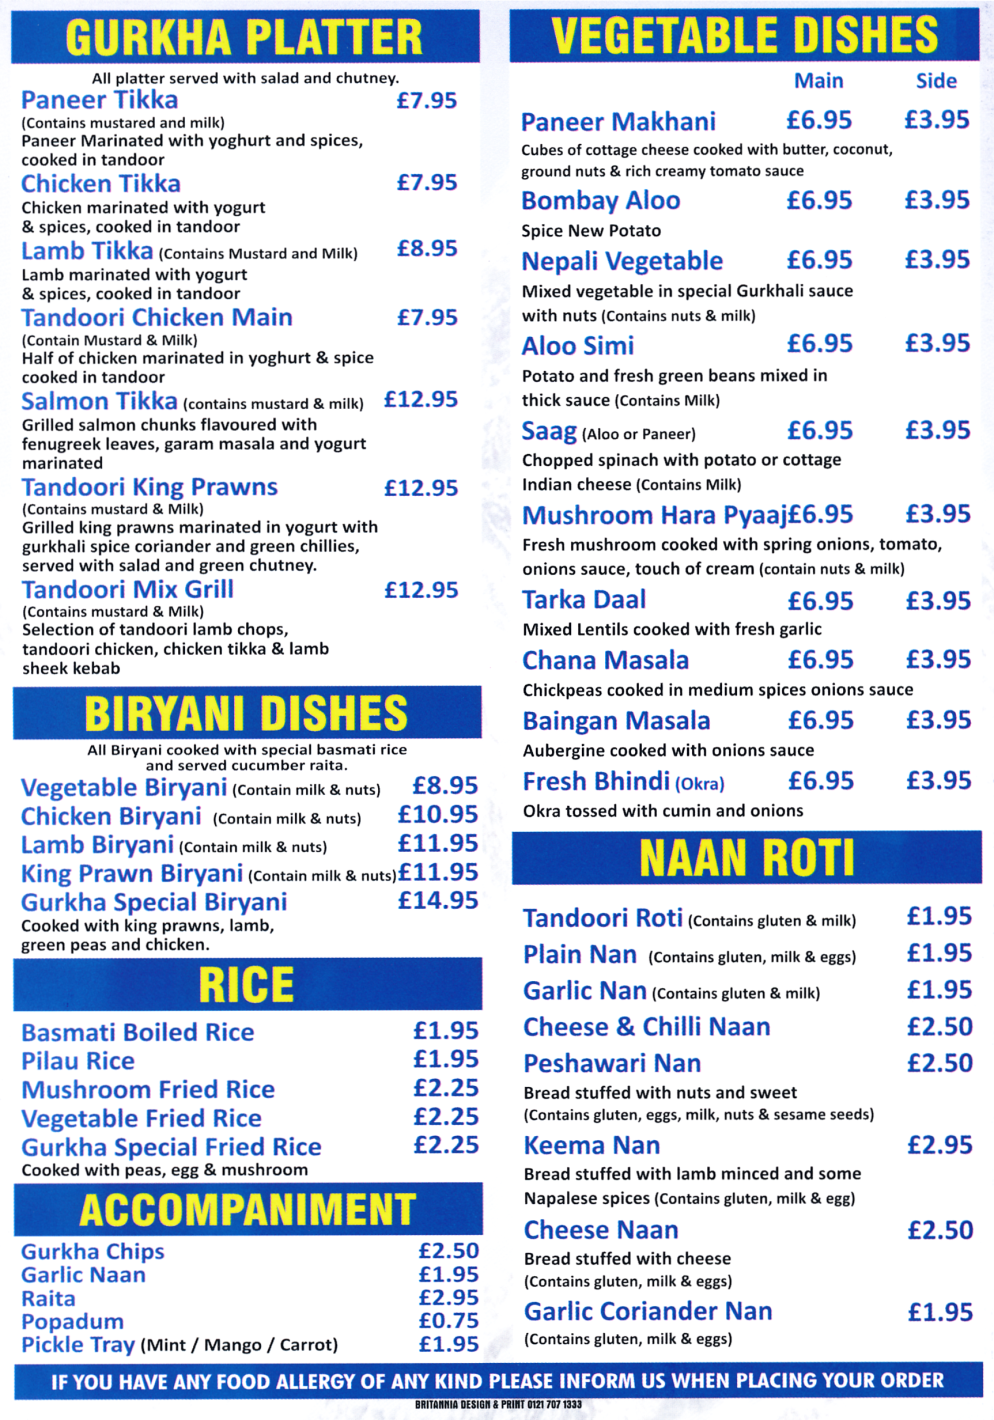 Menu for Gurkha Express (Salmon Tikka, Tarka Daal, Chicken Tikka, King Prawn Biryani, Butter Chicken, Bhuna, Madras..)